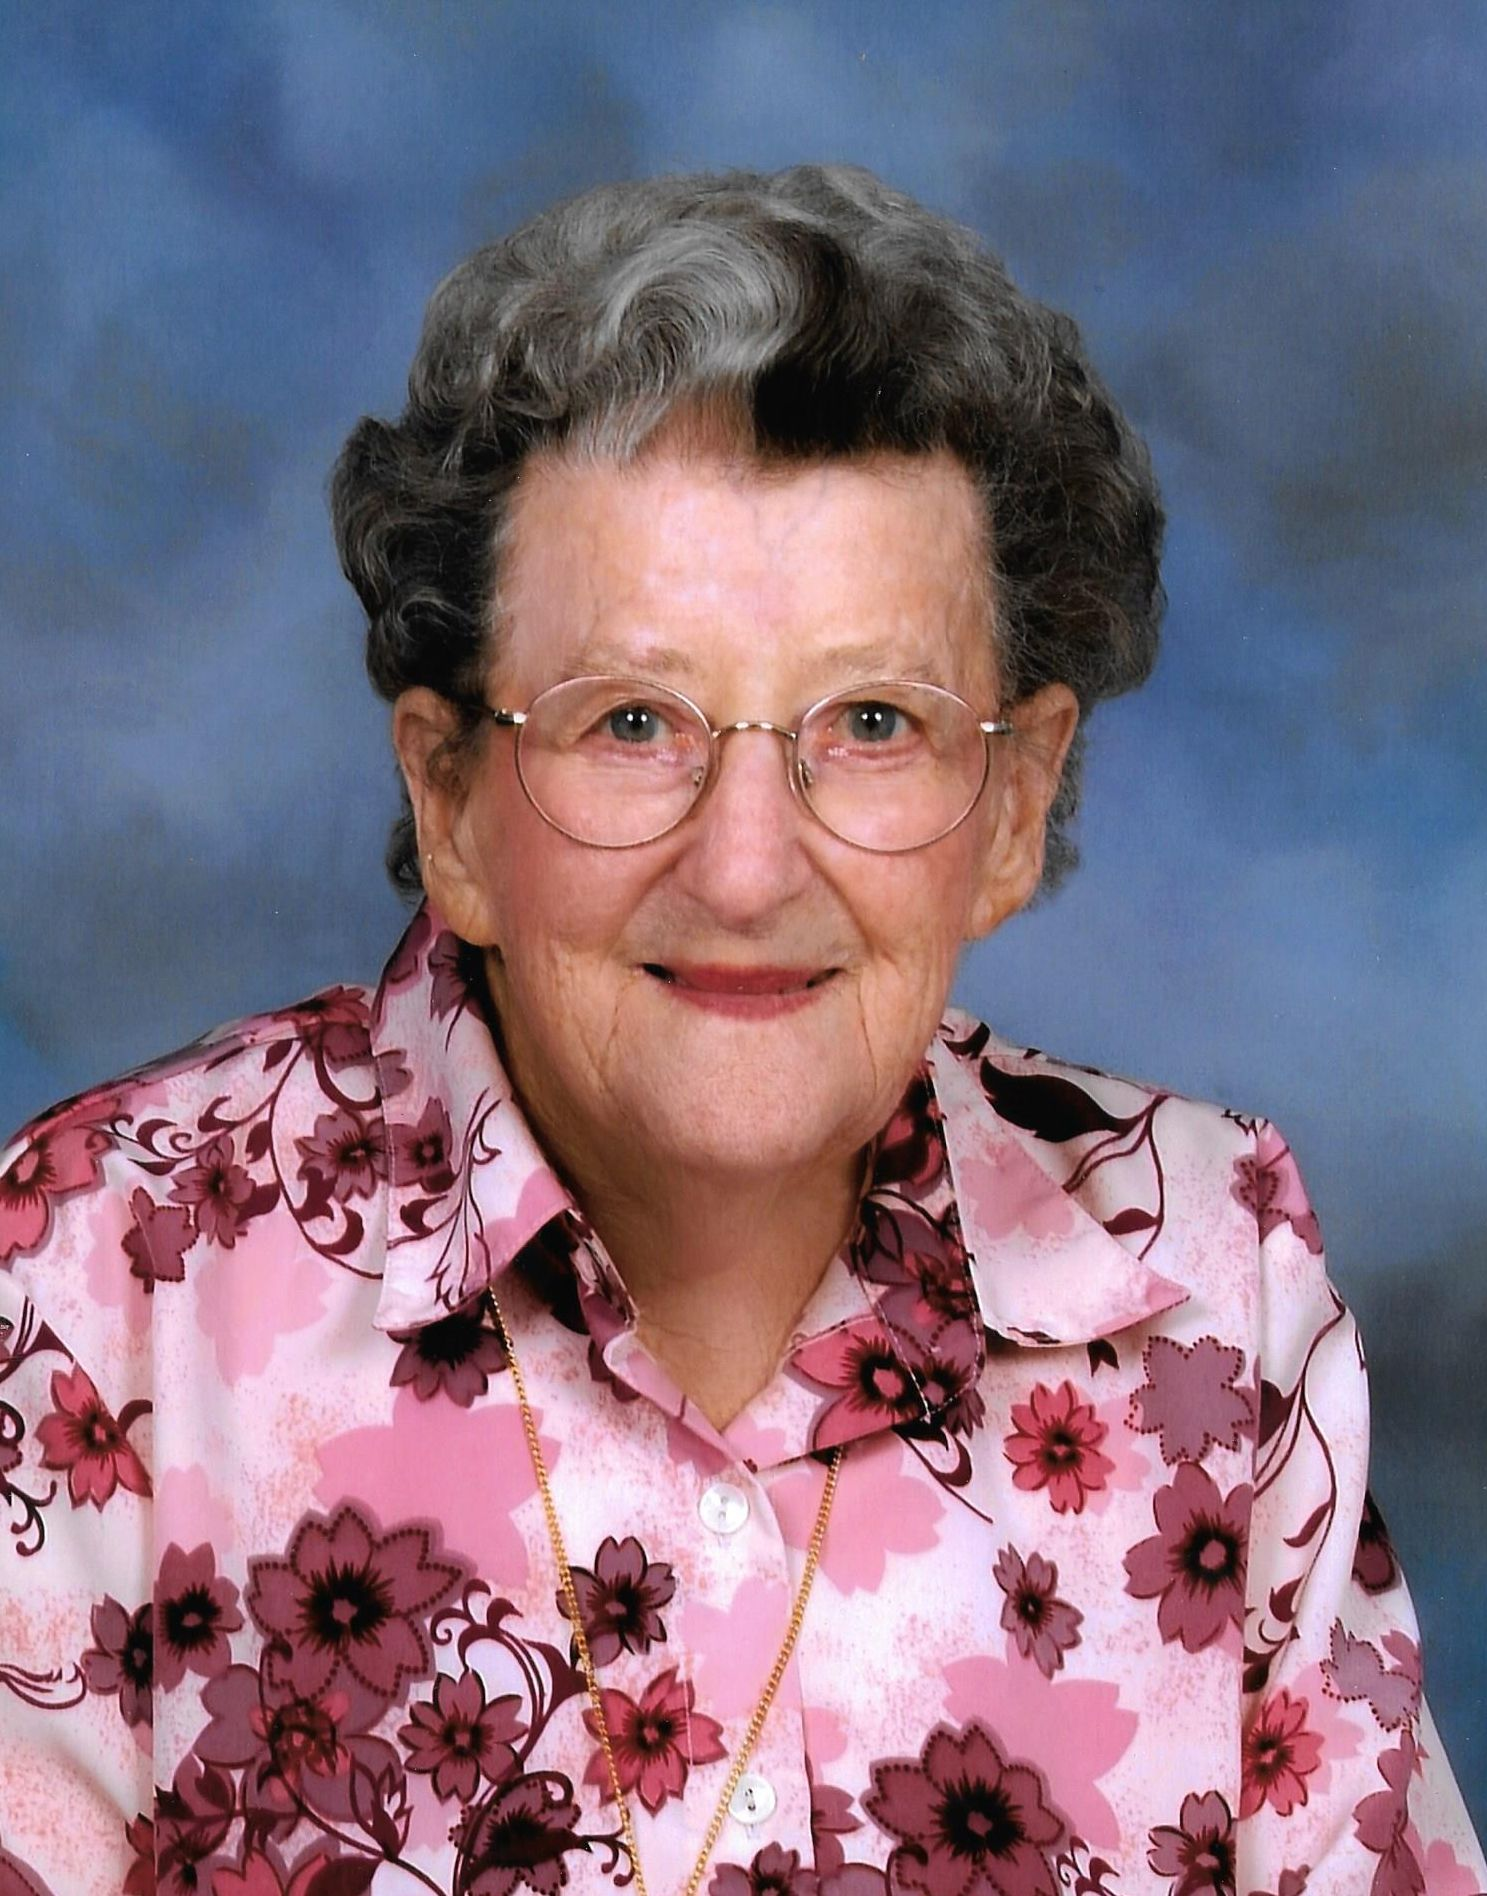 Obituary image of Edna Earl Miller